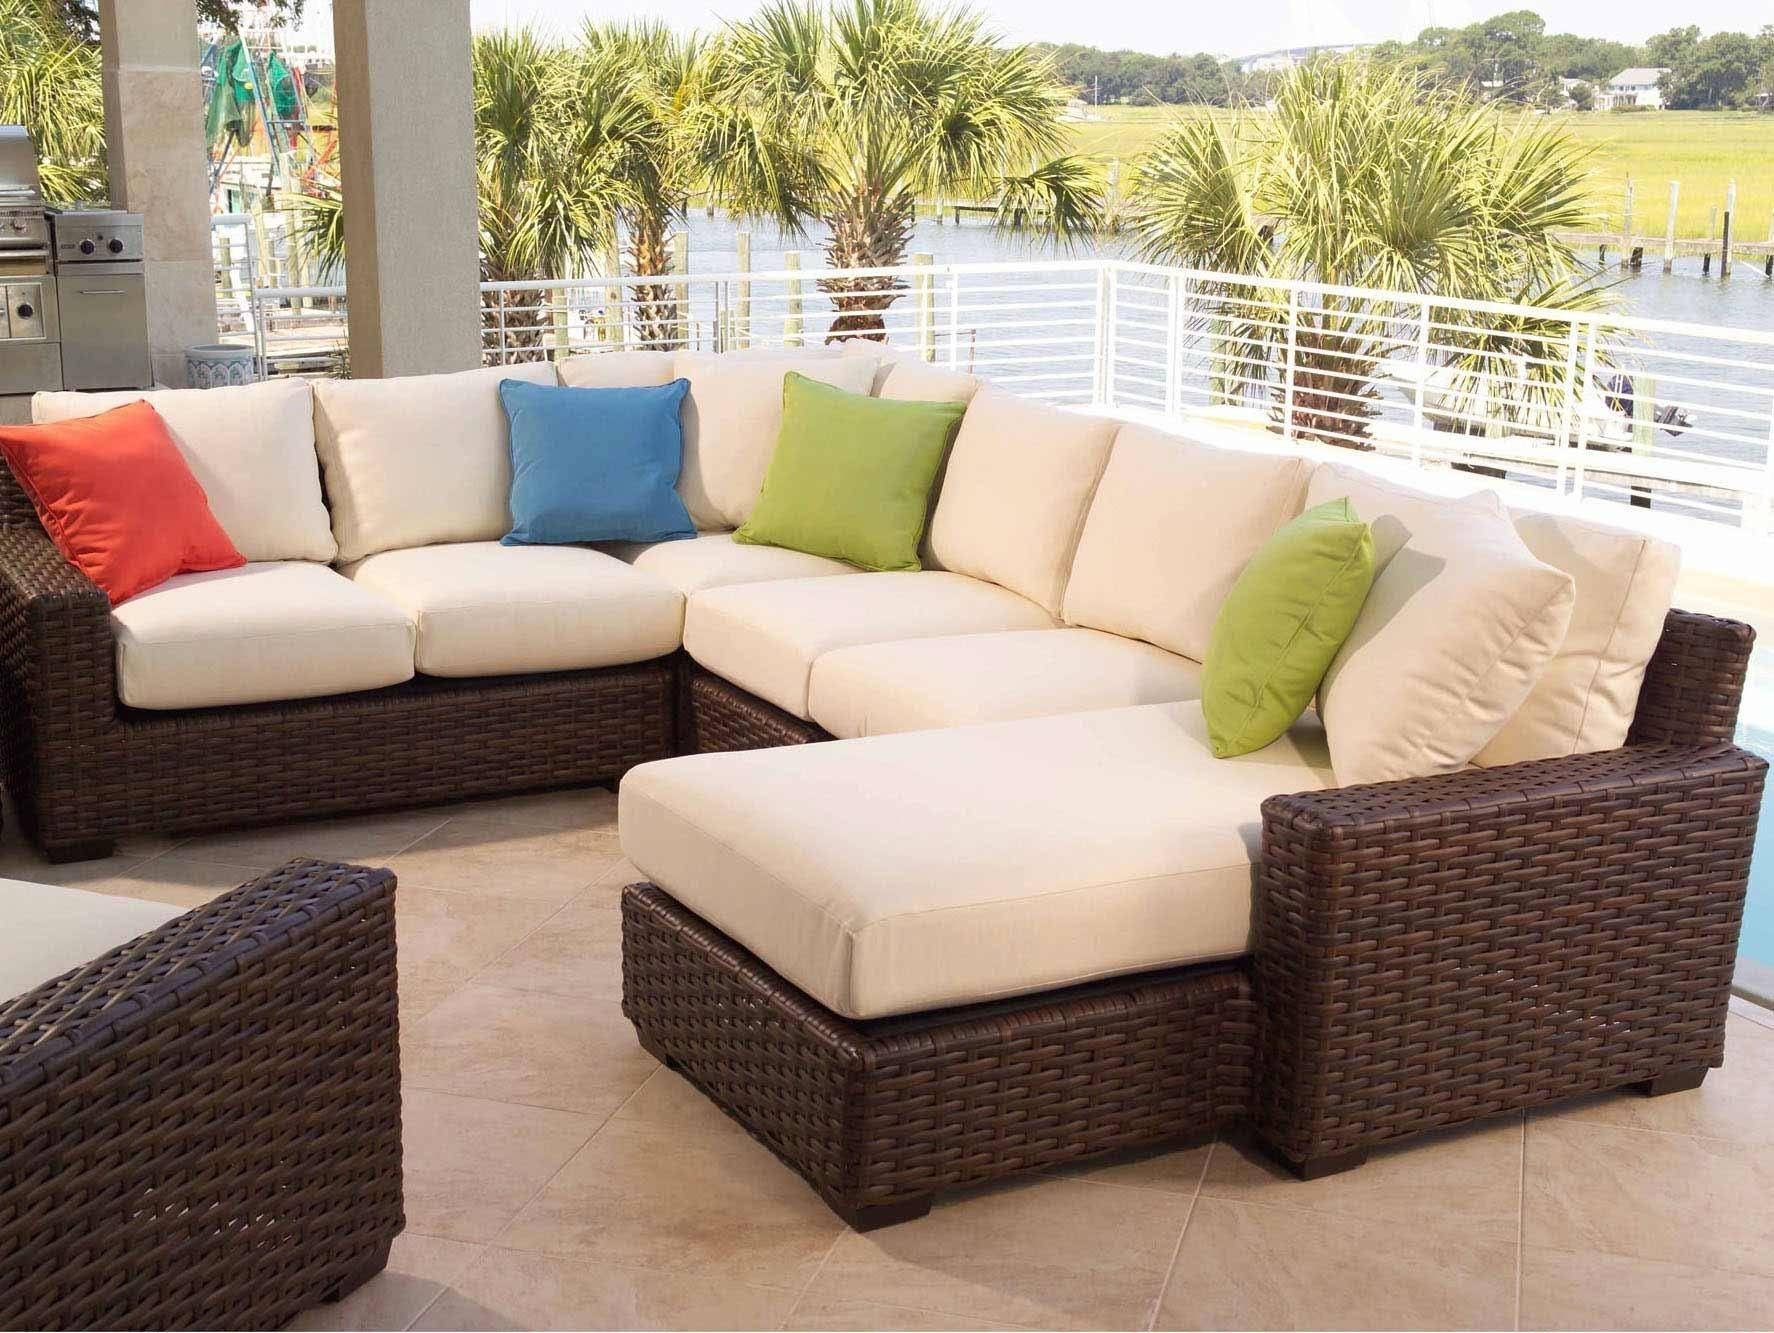 20 Best Ideas Craigslist Sectional Sofas | Sofa Ideas intended for Craigslist Sectional Sofas (Image 5 of 15)